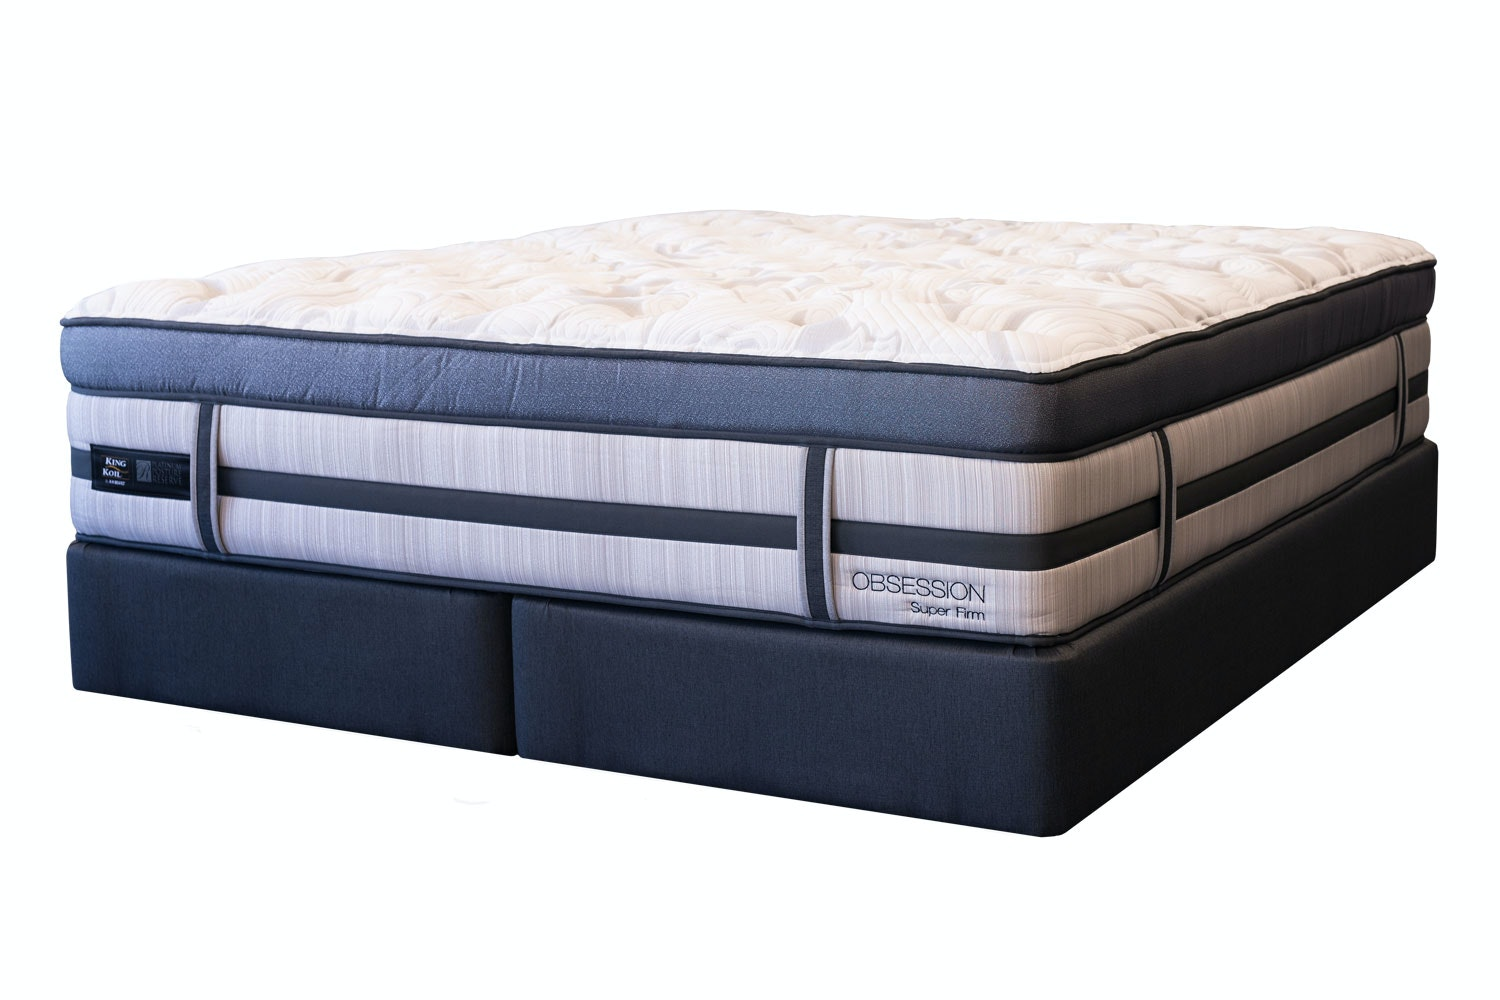 Obsession Super Firm King Bed by King Koil